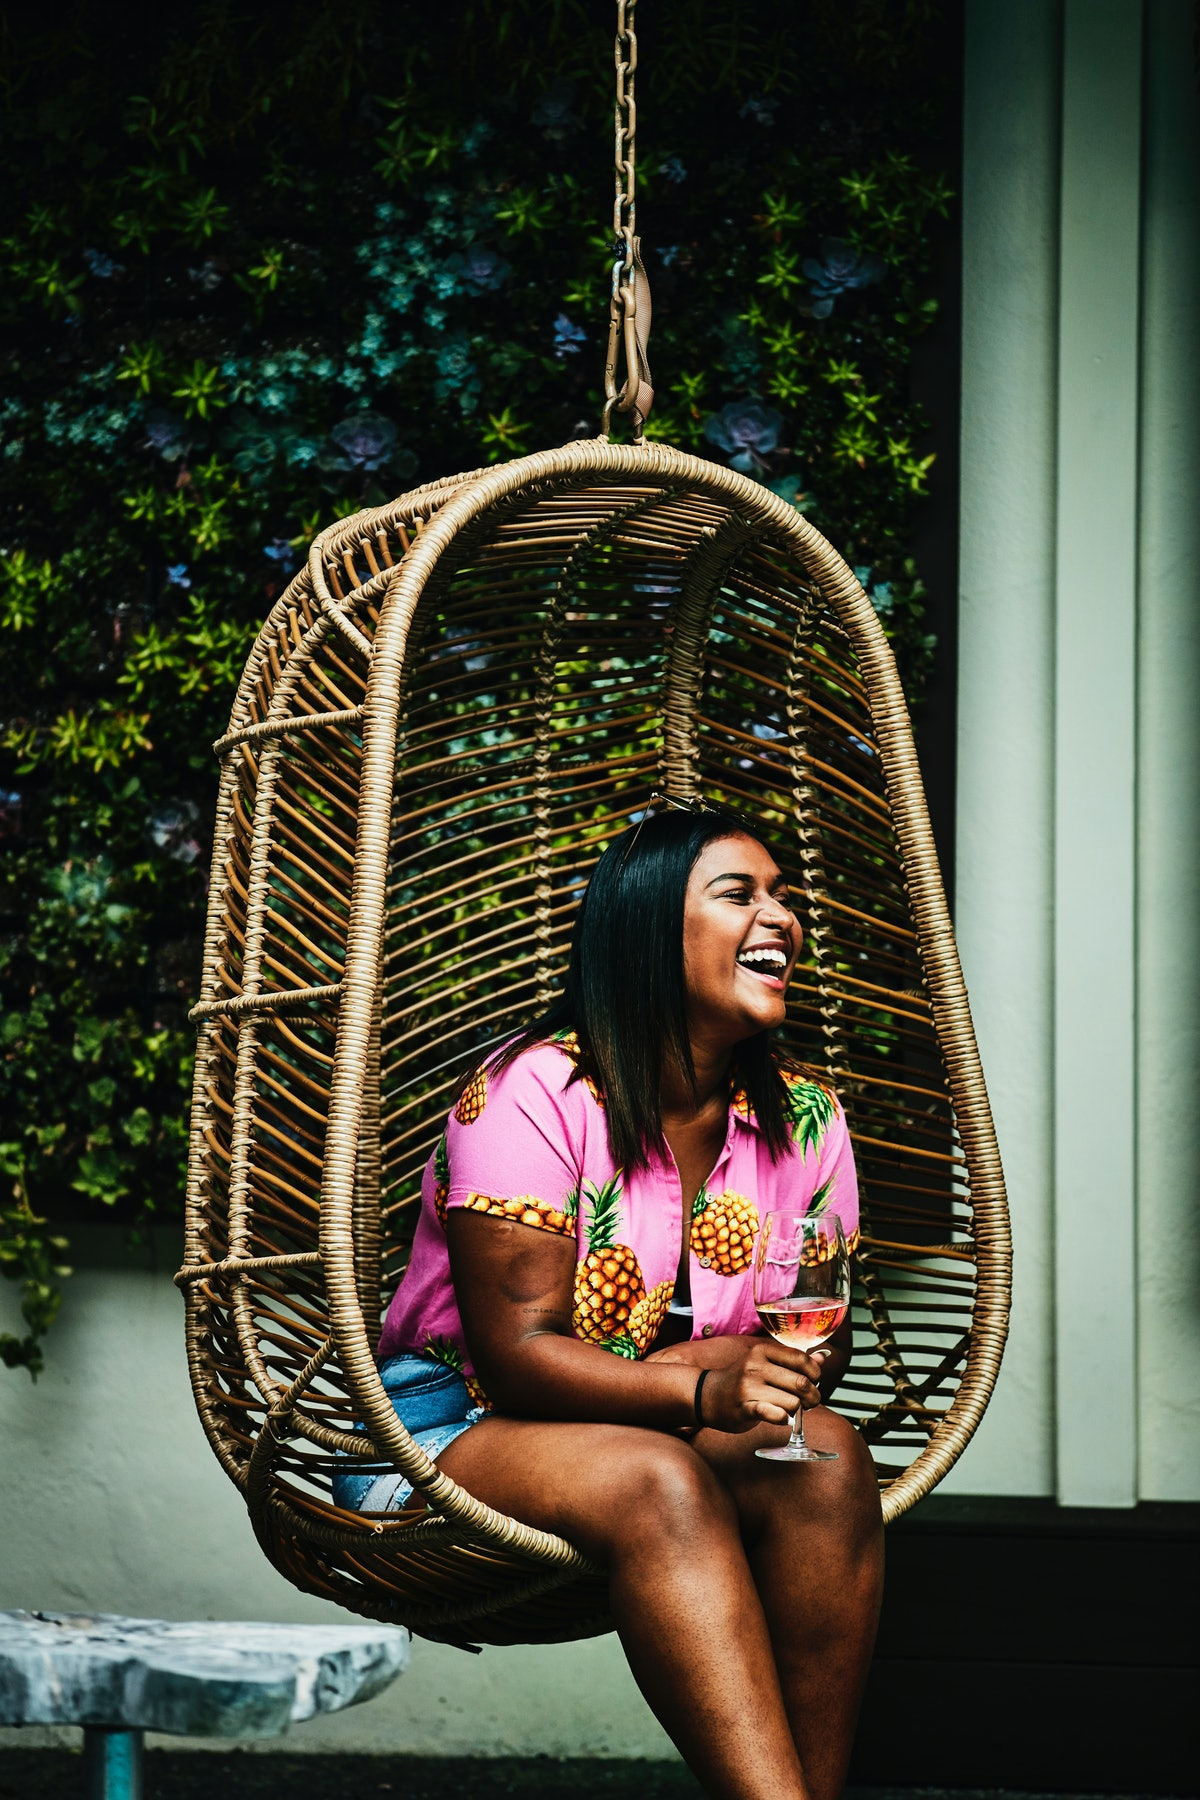 Young woman laughing in a hanging chair, holding a glass of wine before posting a pic on Instagram w...